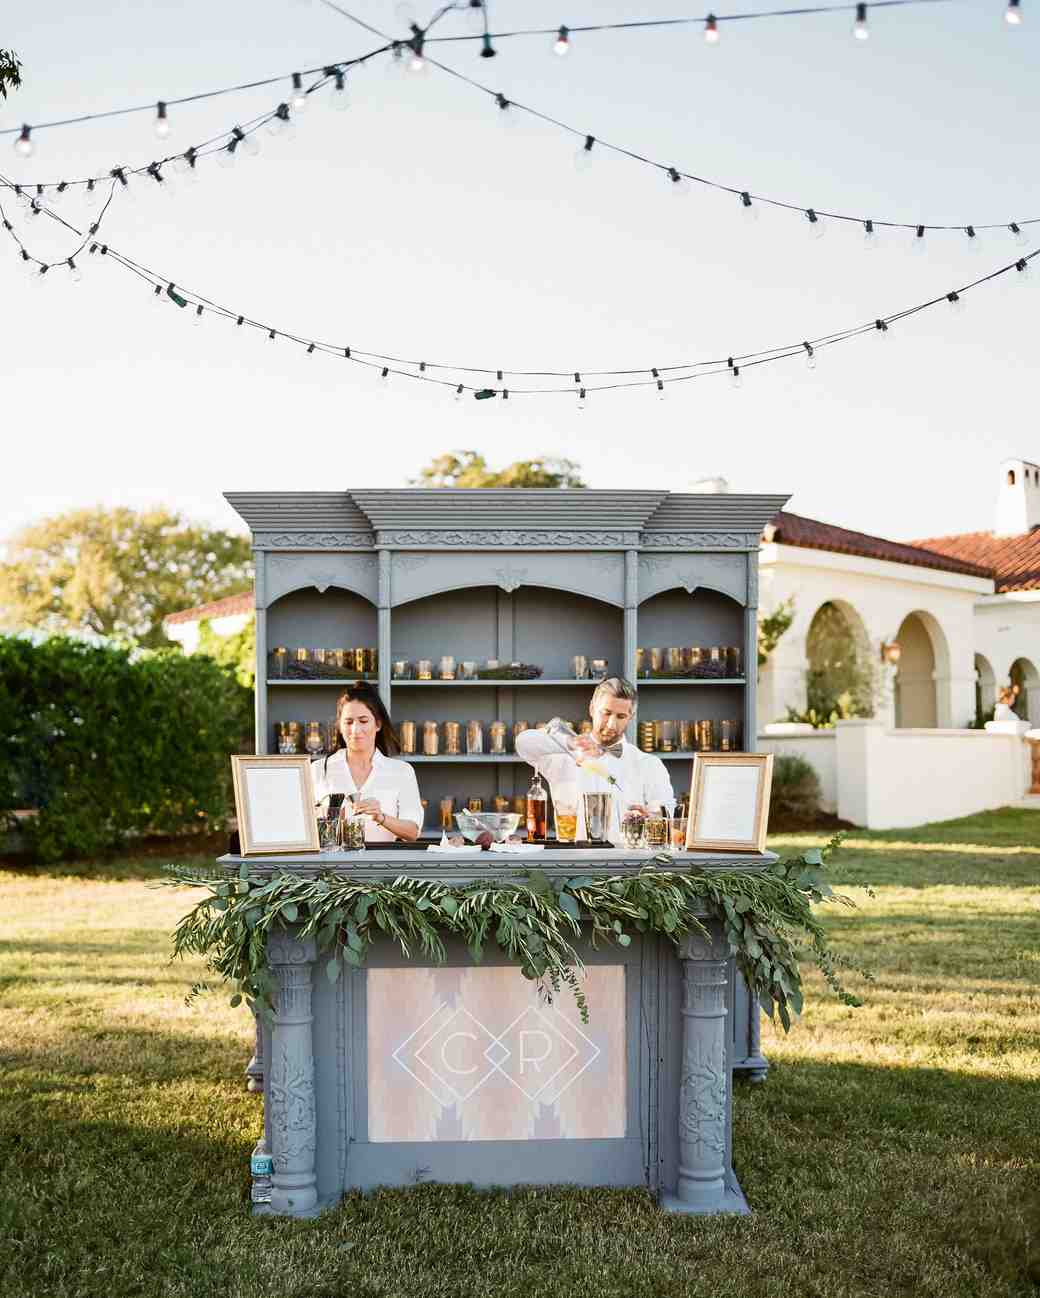 Chic Monogrammed Wedding Bar